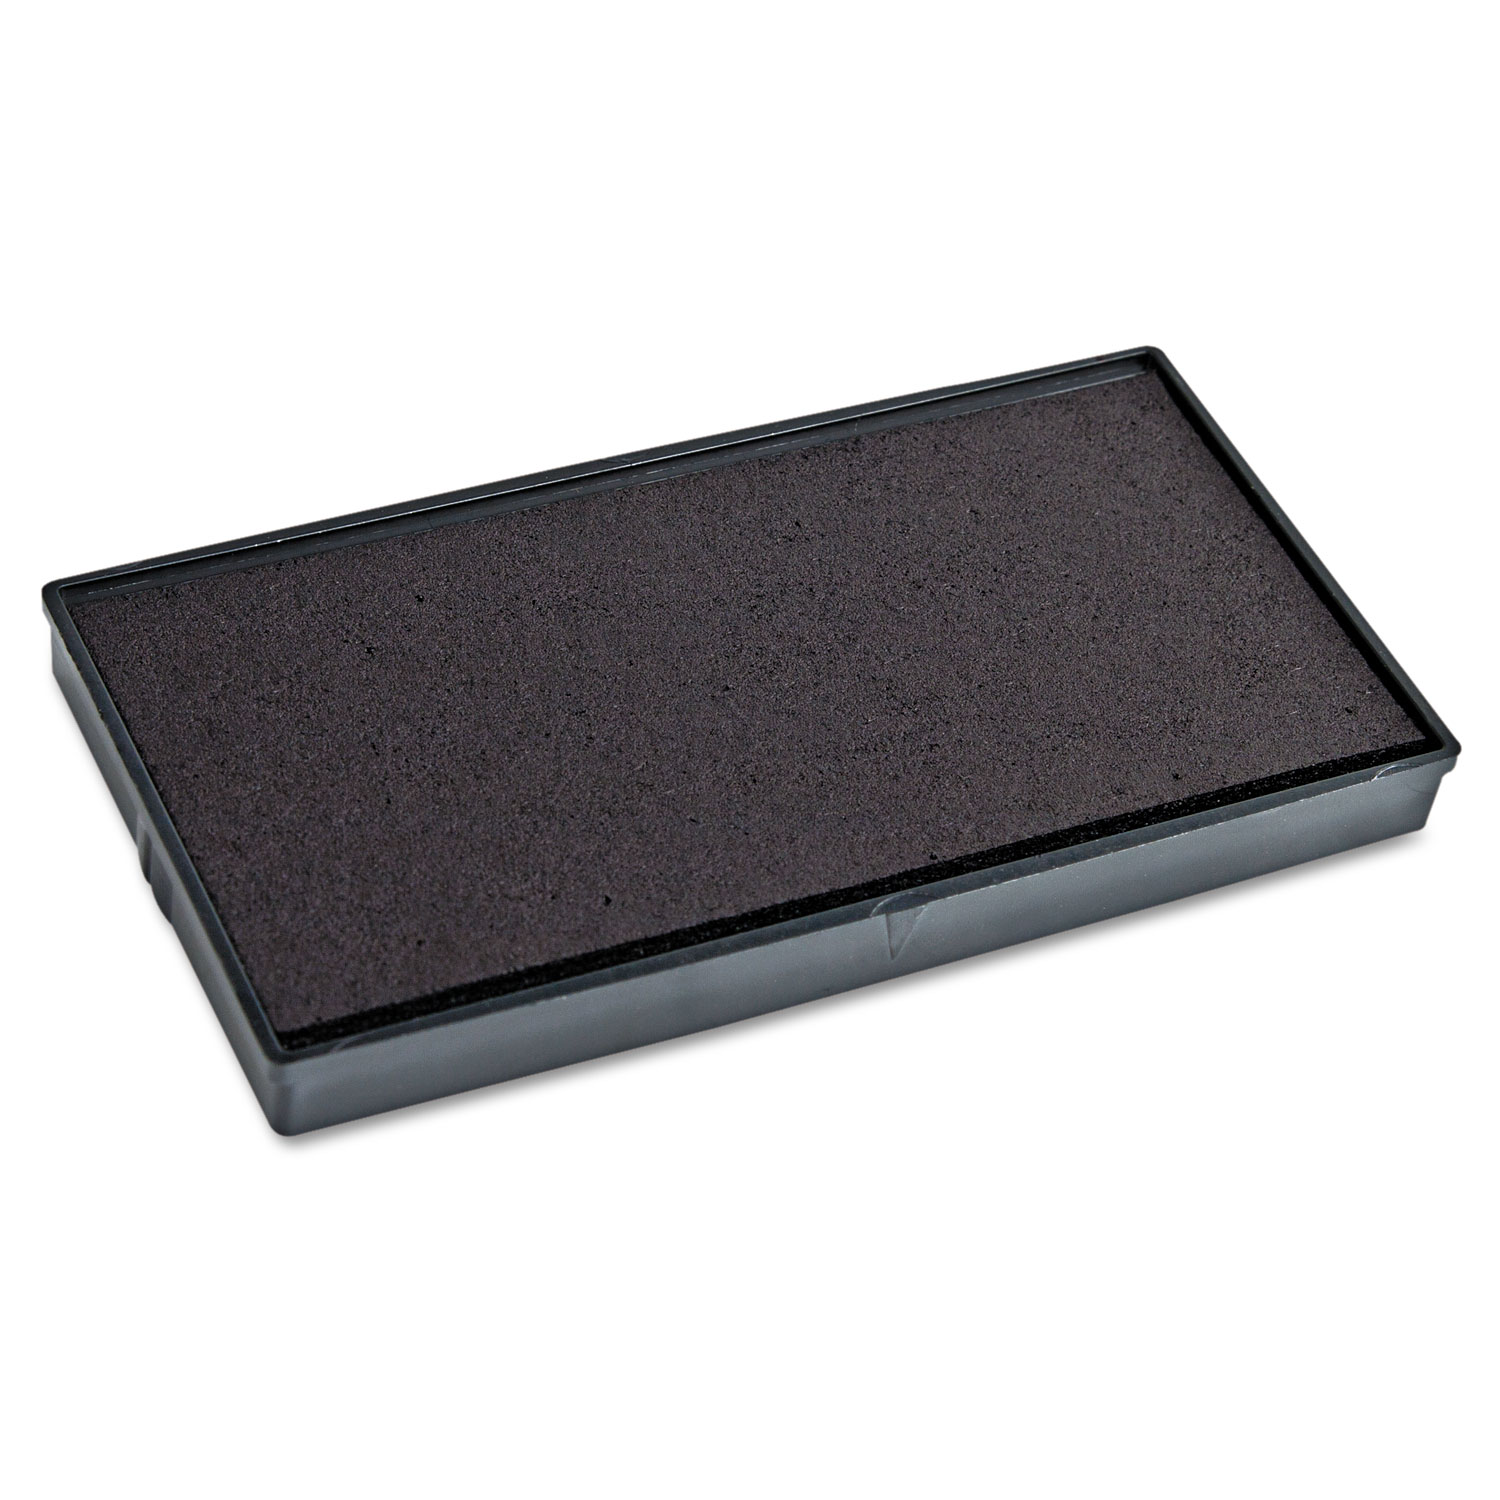 Replacement Ink Pad for 2000PLUS 1SI60P, Black by CONSOLIDATED STAMP